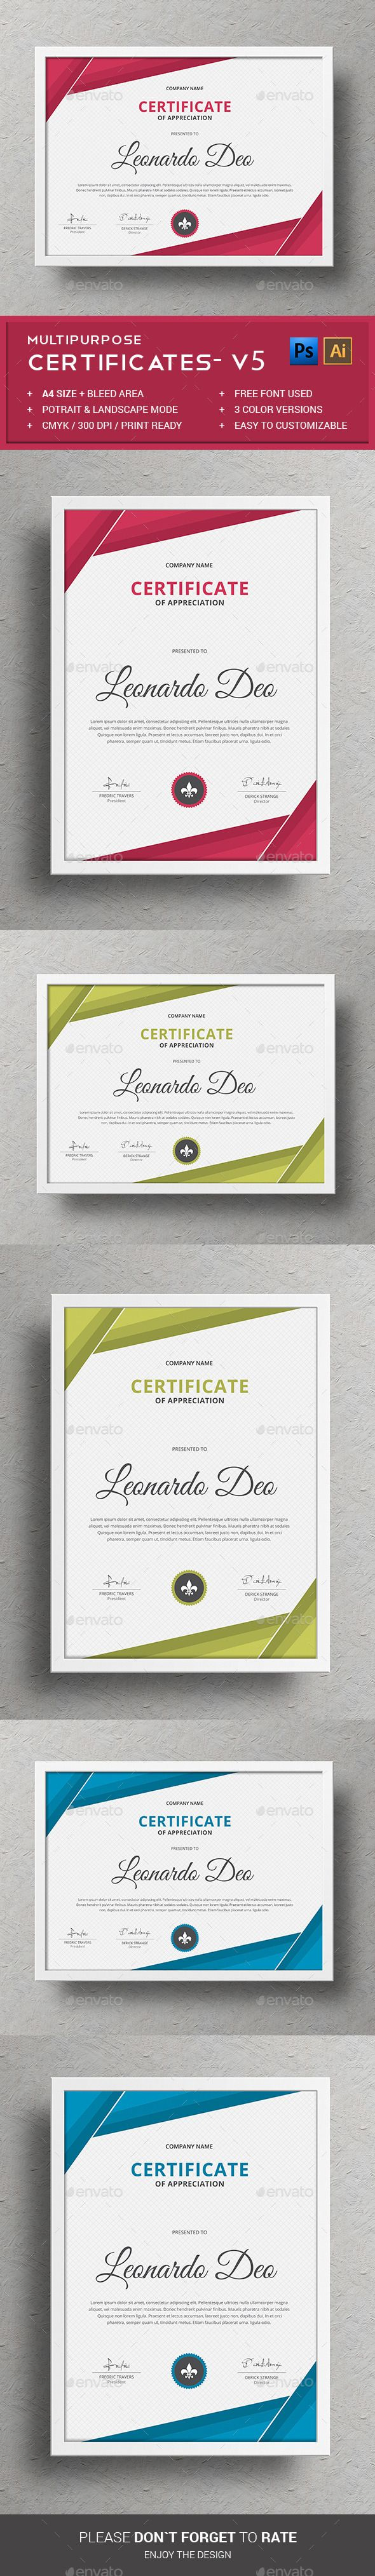 Professionally organized with labelled PSD Certificate Template, can be edited by any beginner. Flexible to change image, text and color very quick & easy. Download http://graphicriver.net/item/certificates/12743648?ref=themedevisers